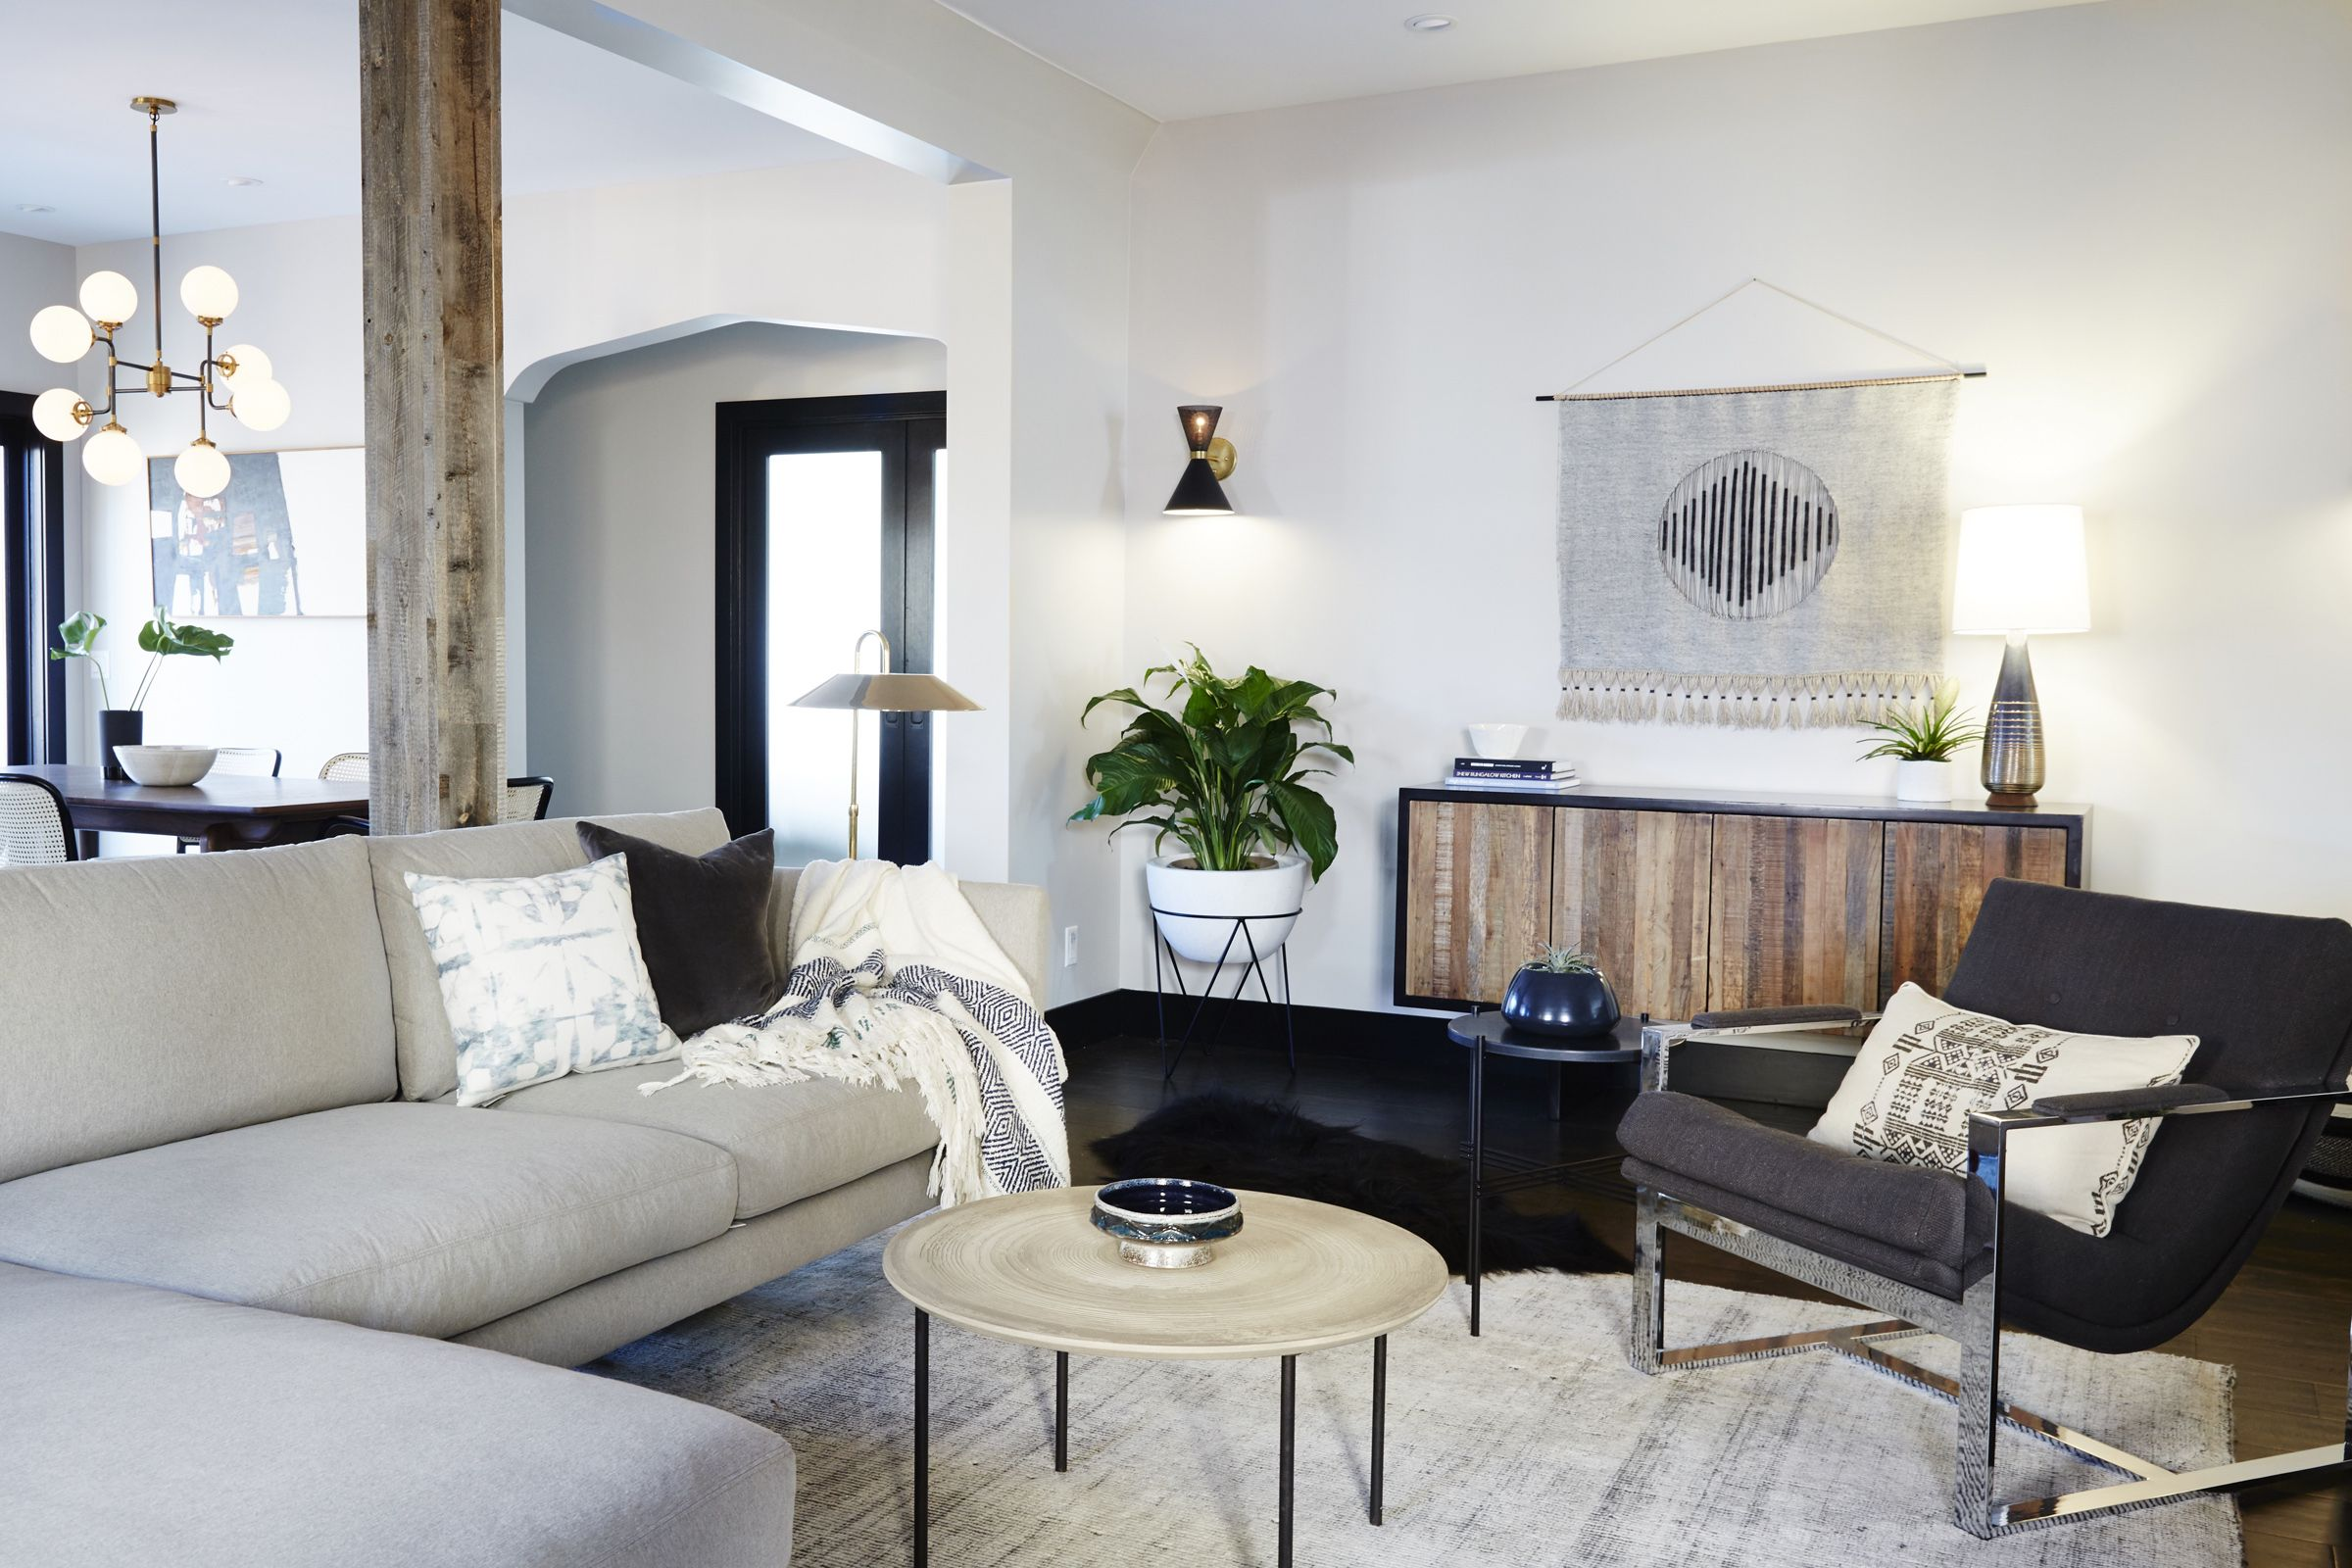 Brooklyn Based Interior Design Firm Sheep Stone Designs An La